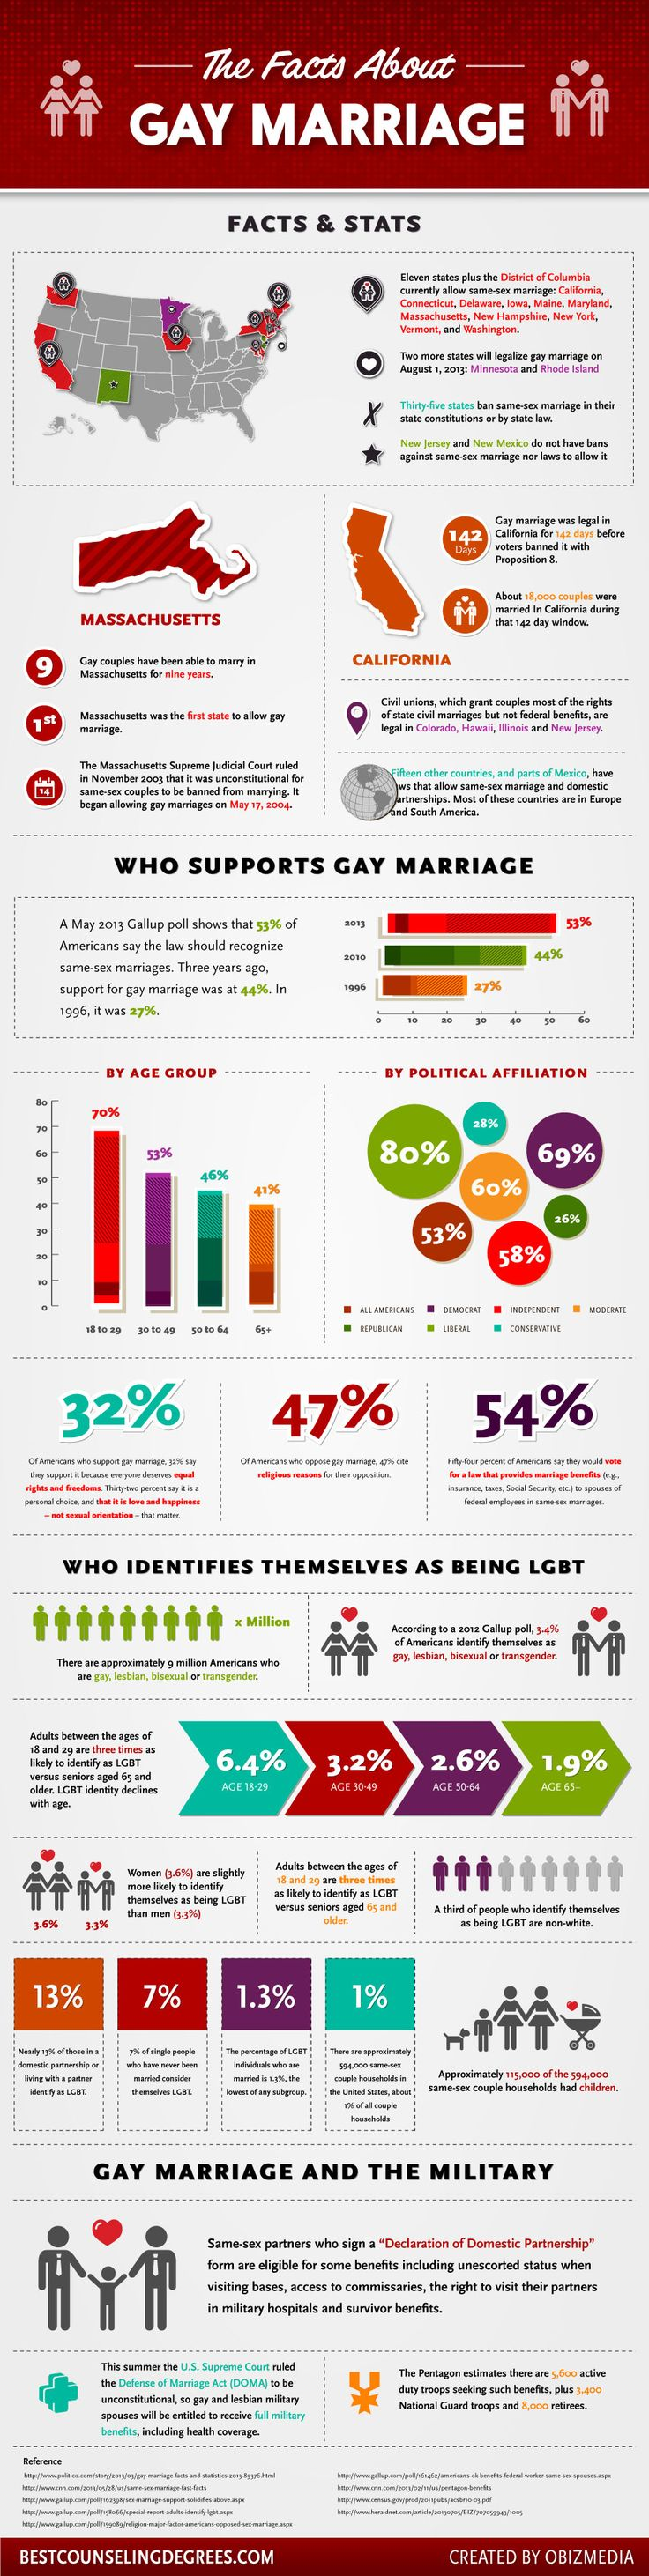 best images about marriage equality marriage facts and stats about same sex marriage infographic gay lgbt